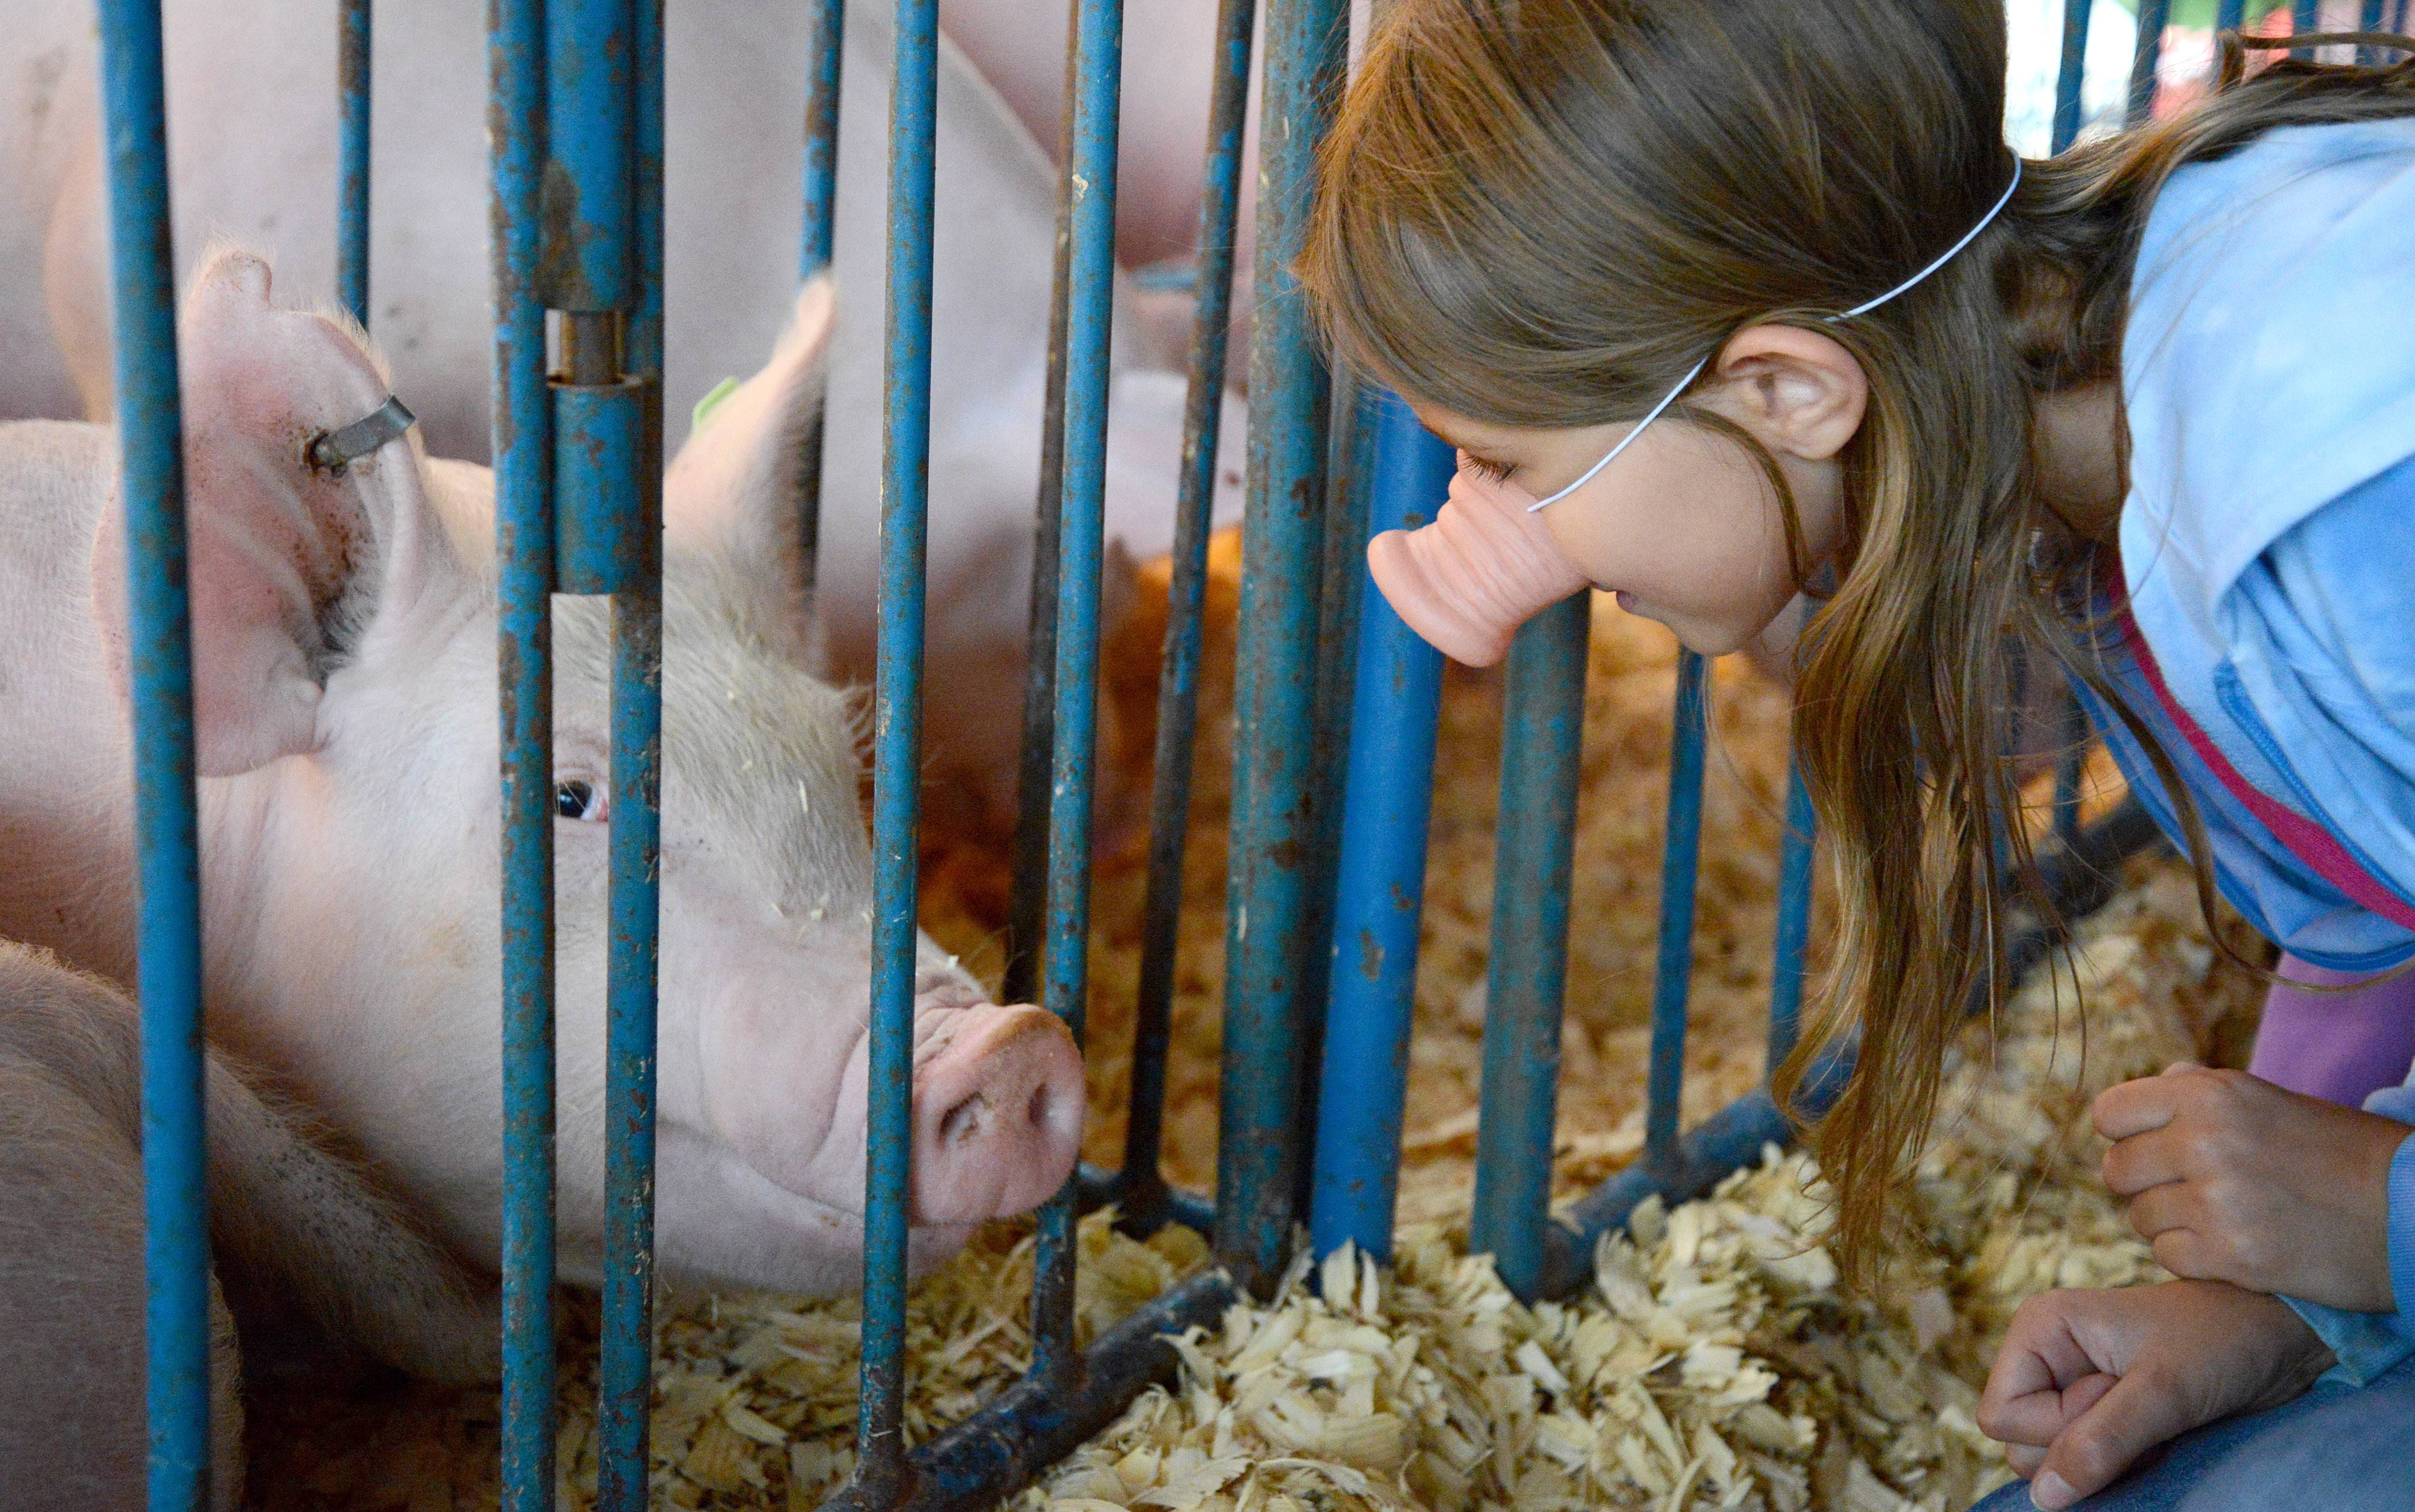 Lillian Schmidt, 9, of Algonquin talks to a pig in the swine barn during opening day of the 146th Kane County Fair in St. Charles. Lillian and three of her friends received pig noses after watching the racing pigs on the Midway and decided to keep wearing them while they visited the 4-H barns.